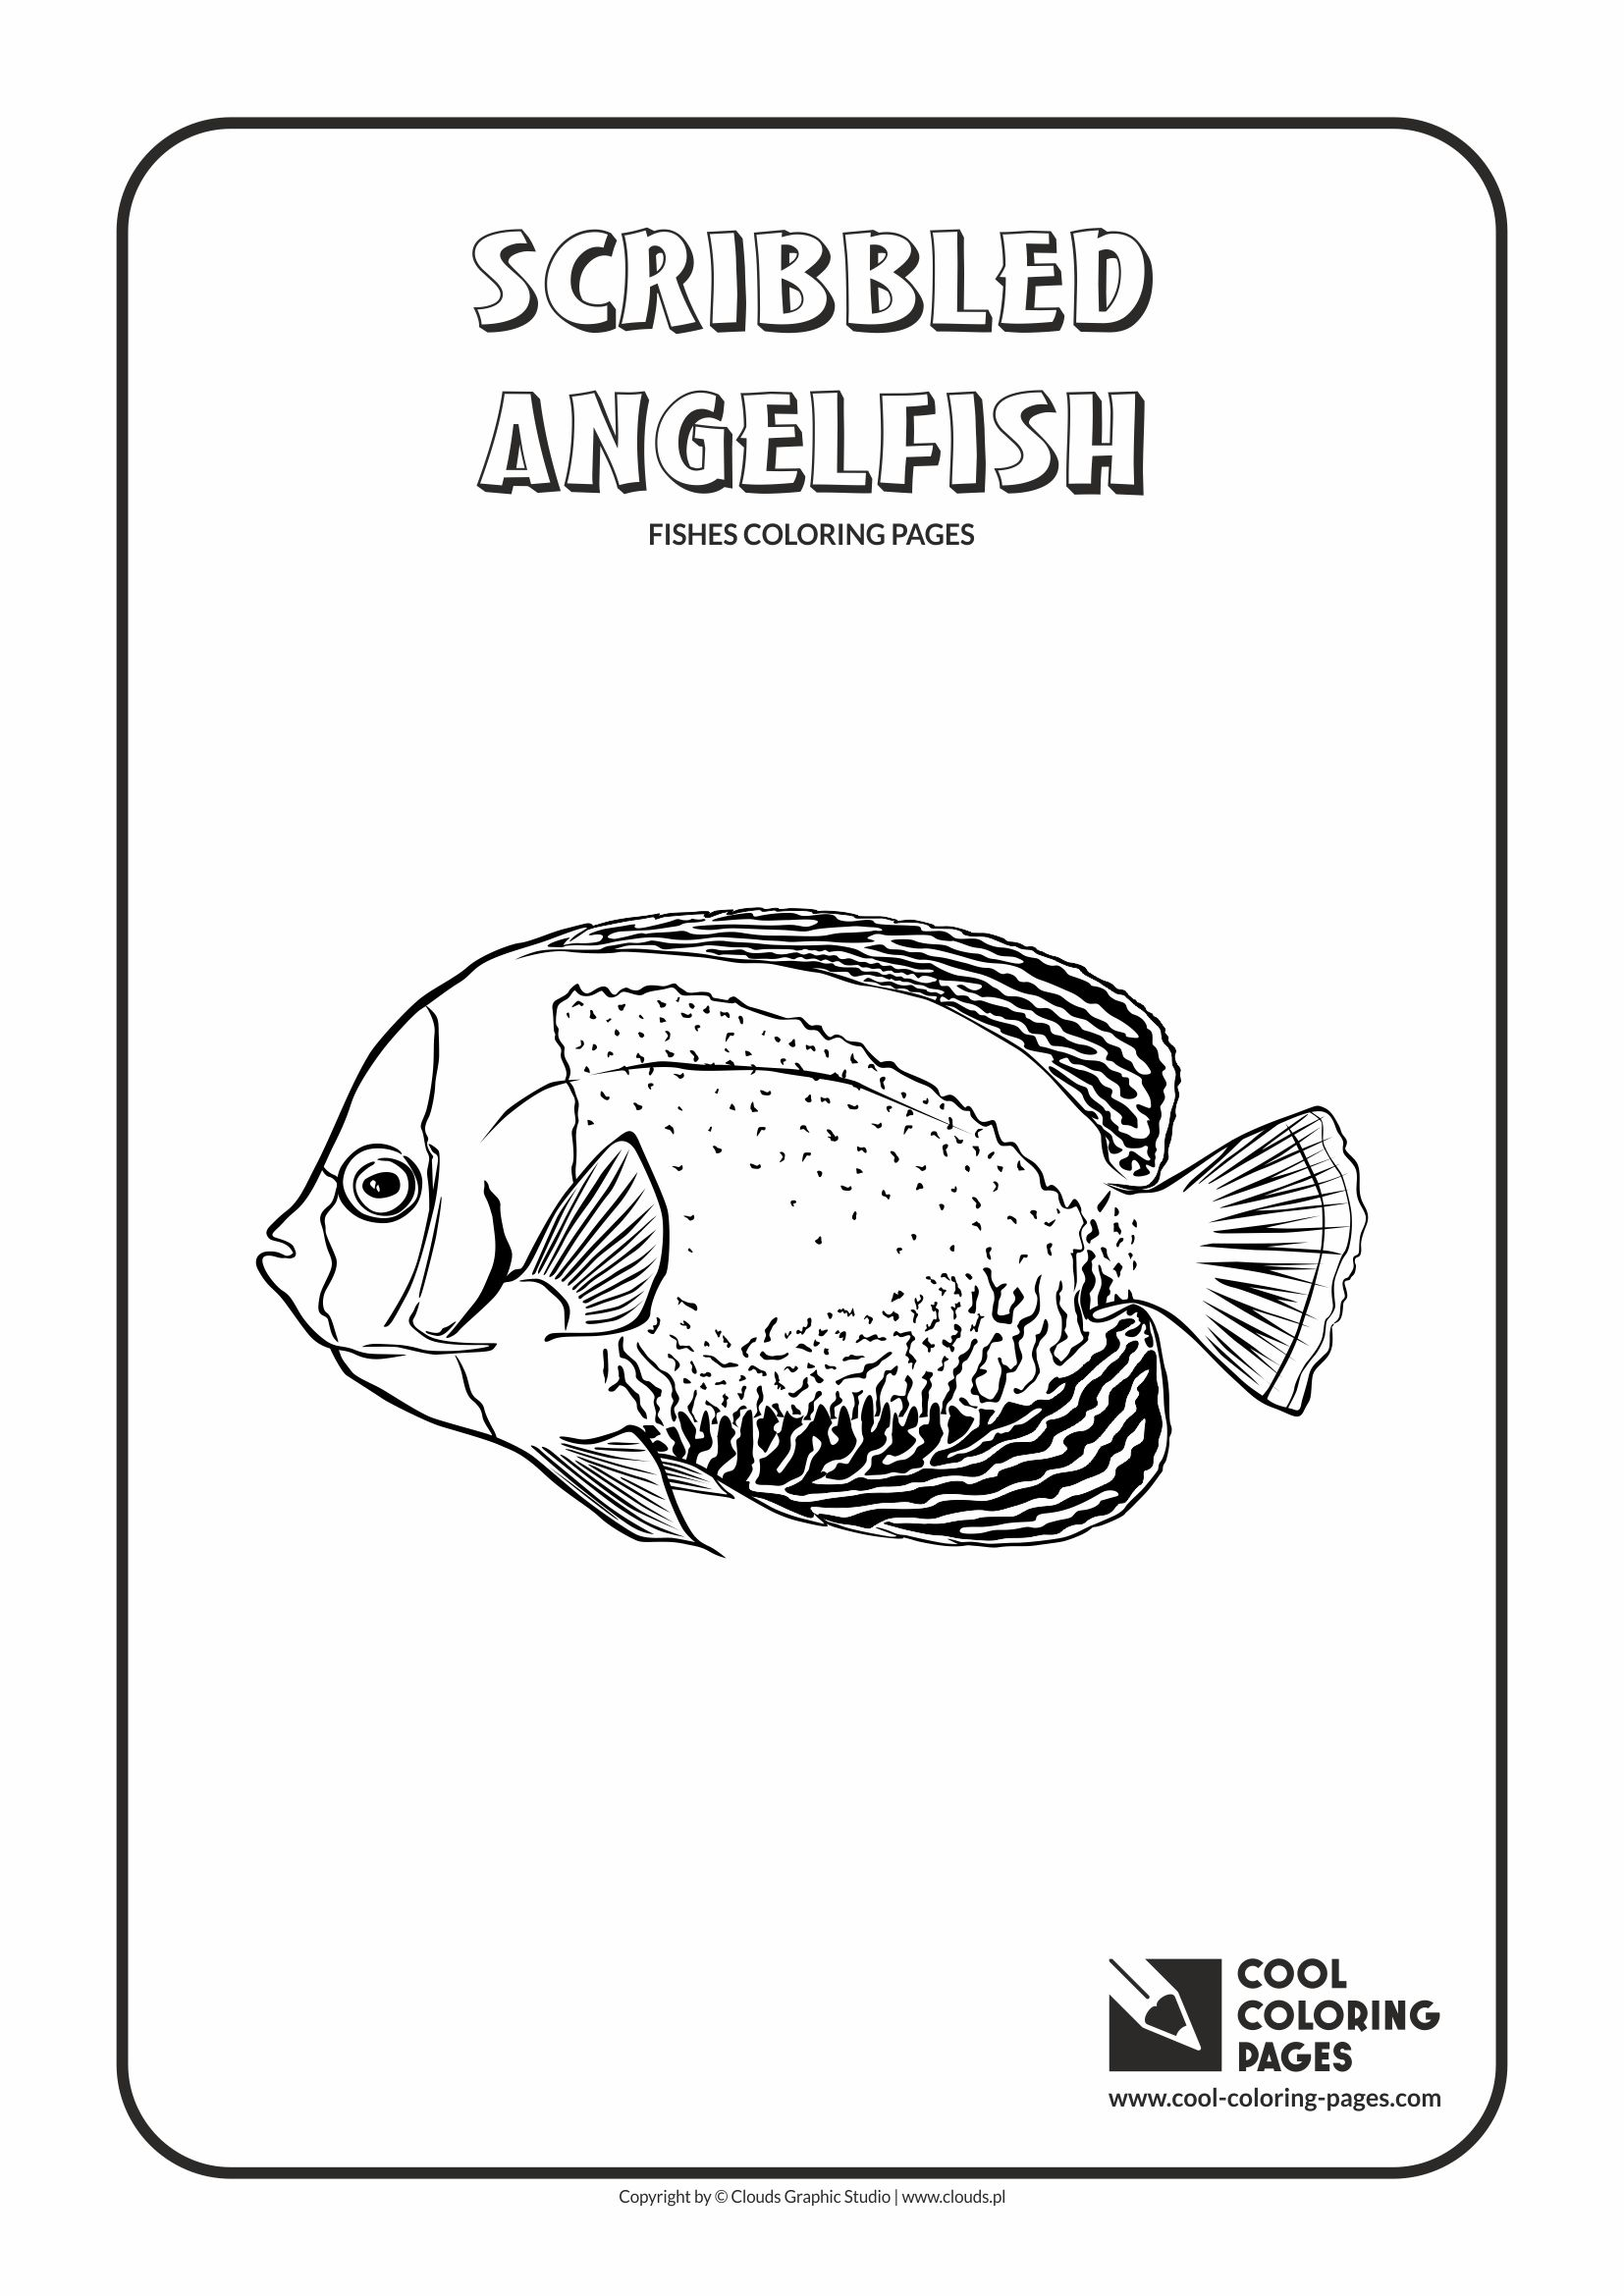 Cool Coloring Pages - Animals / Scribbled angelfish / Coloring page with scribbled angelfish